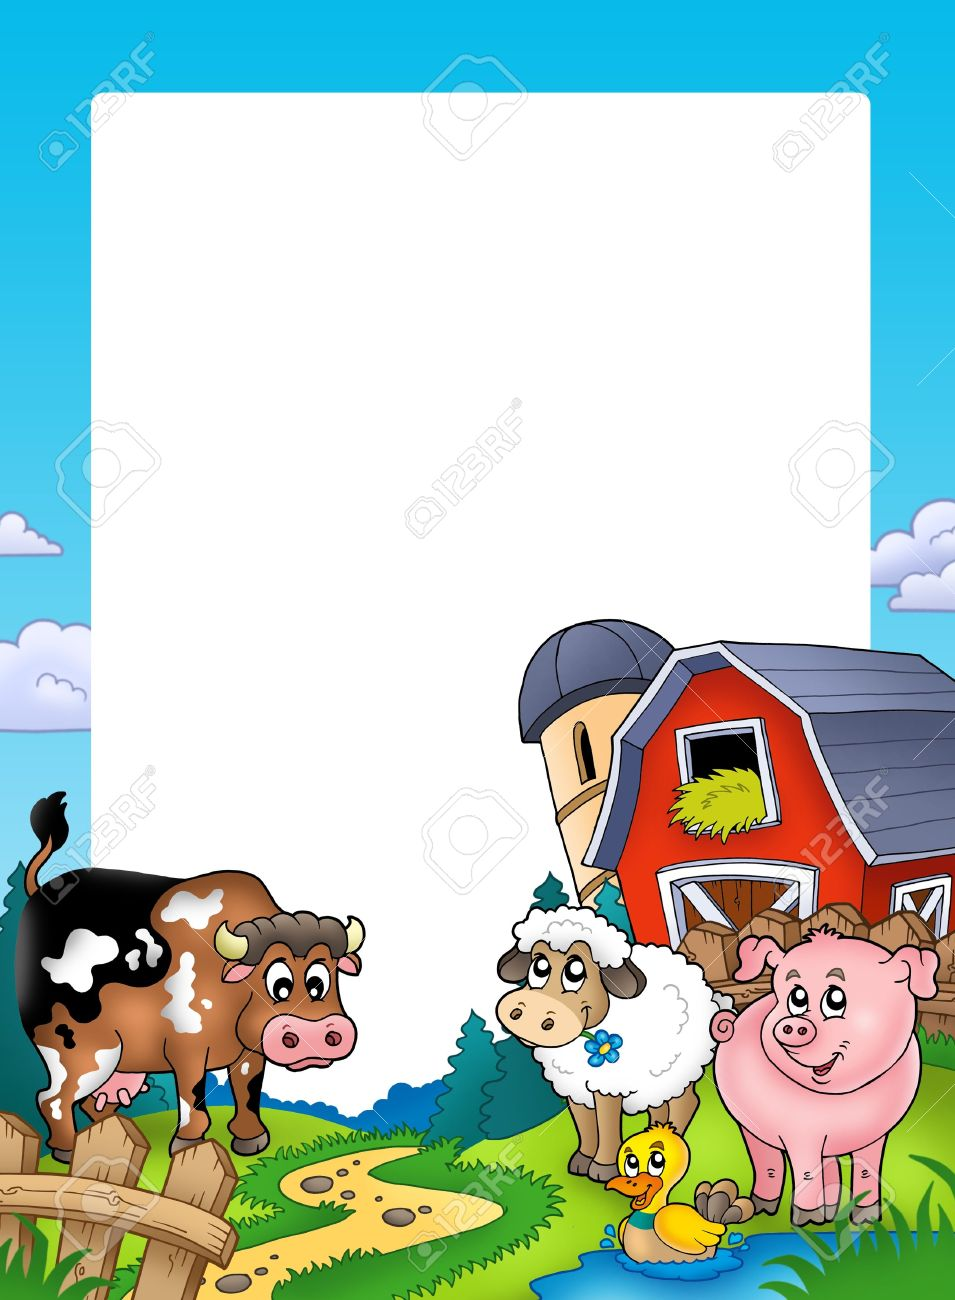 Frame with barn and farm animals - color illustration. Stock Photo - 7722922